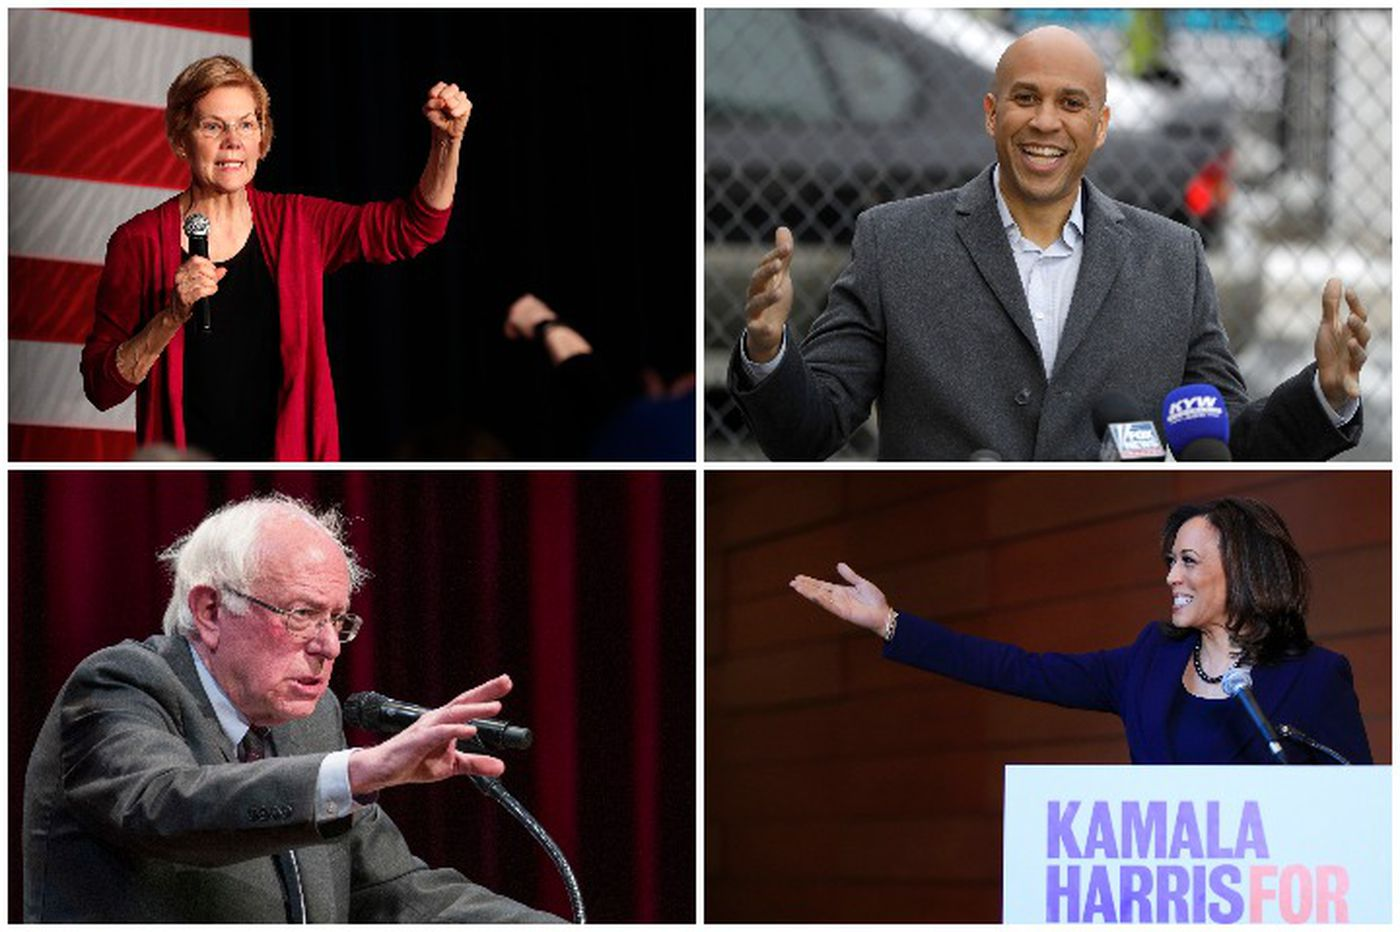 For some 2020 Democrats, incrementalism is out. Bold liberal ideas are in. They come with risks.